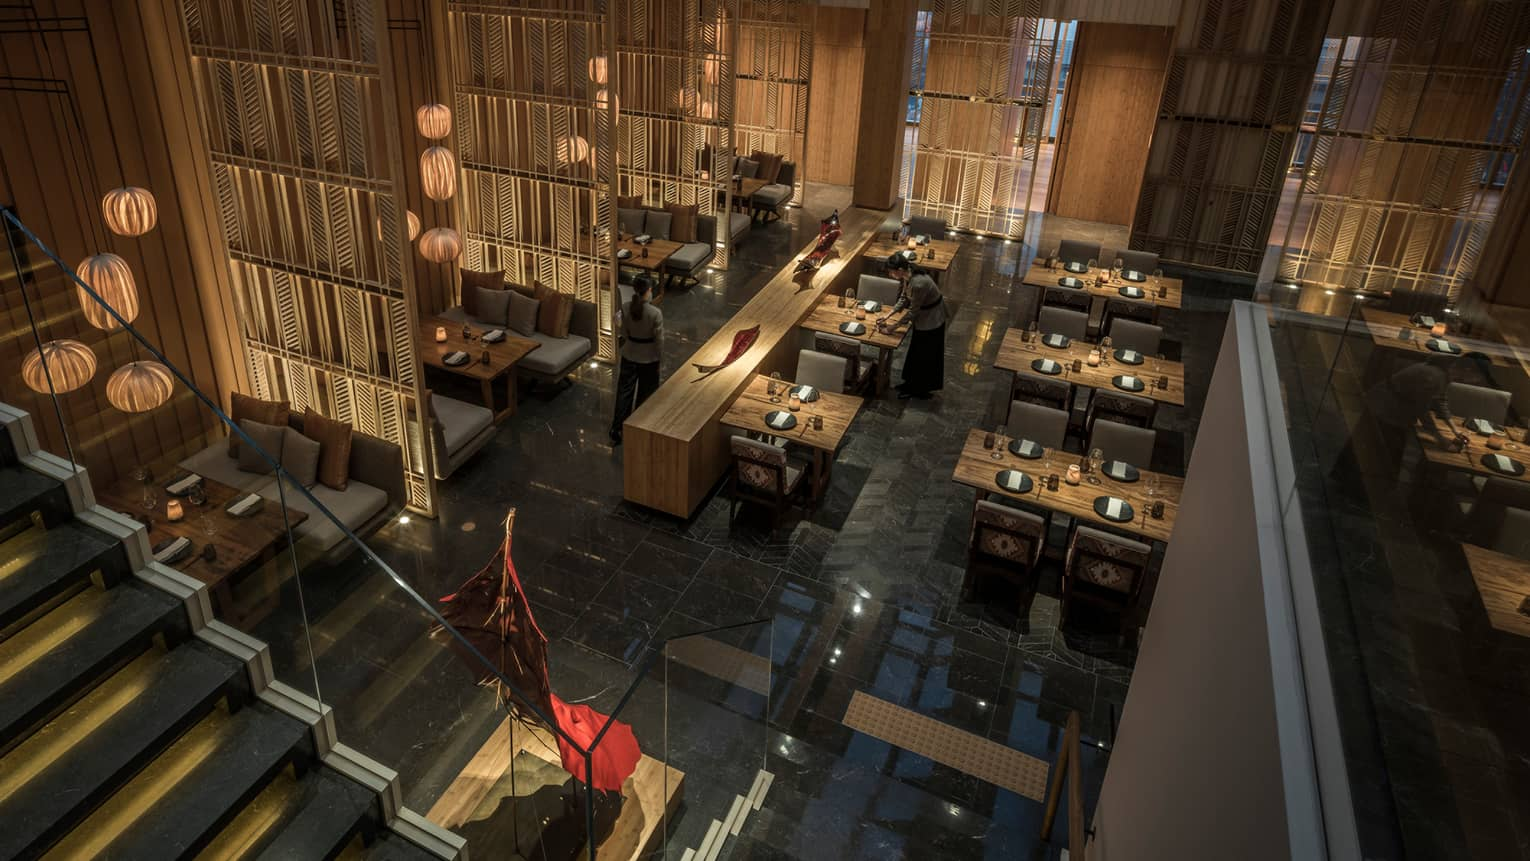 Aerial view over dark Kioku restaurant dining room, staircase